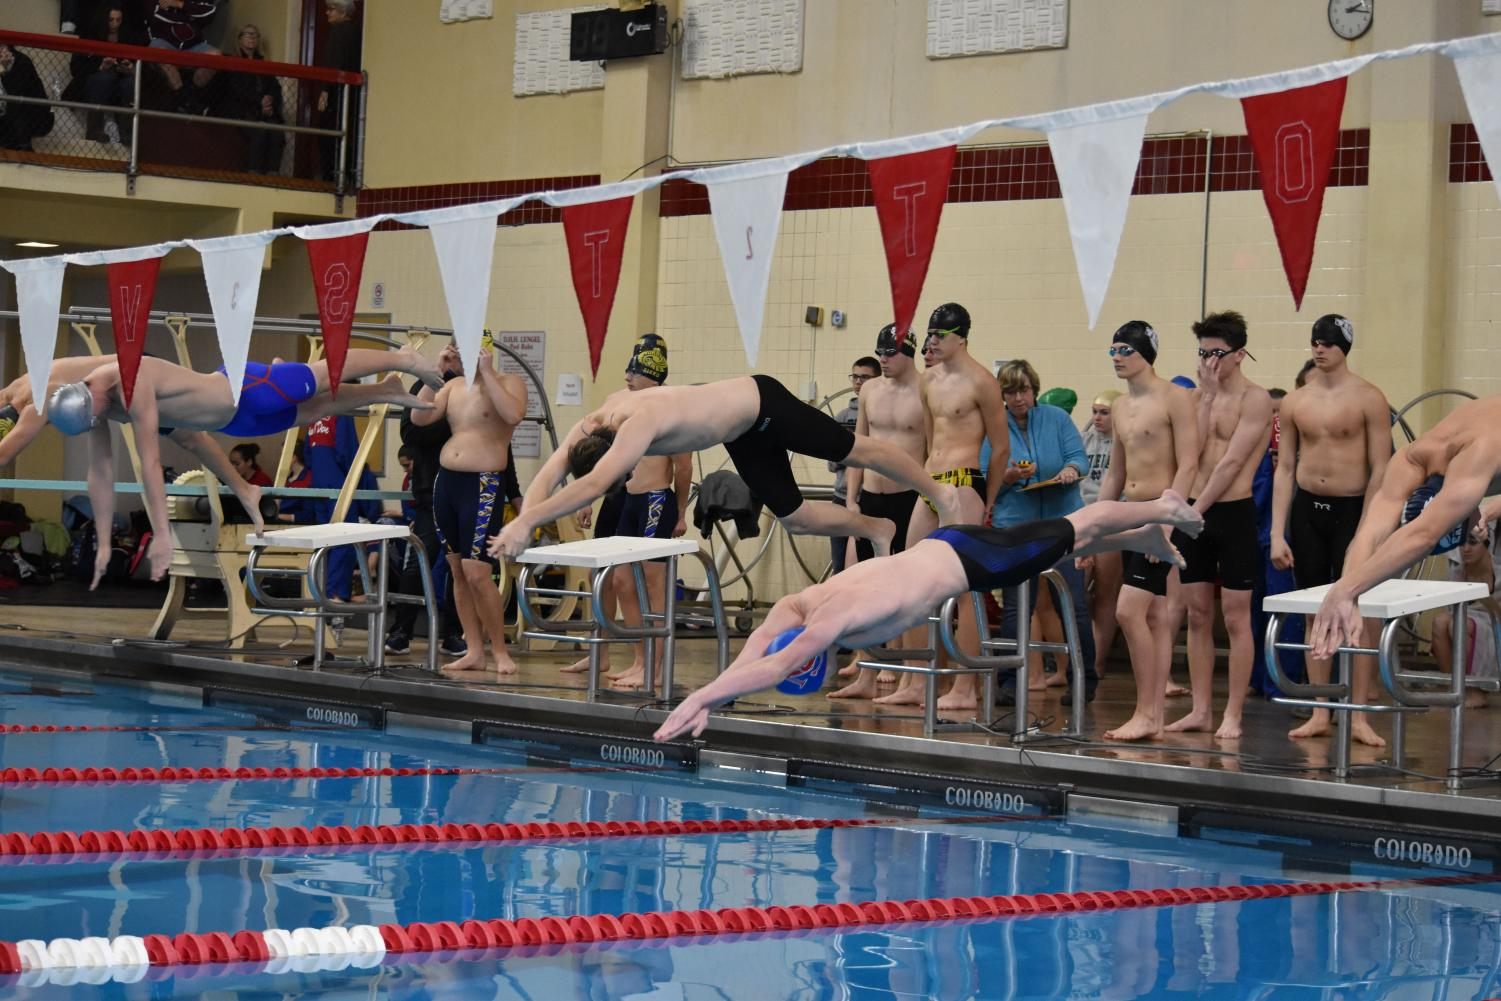 "LAUNCH - At the start of the boys' 400 free relay, senior Josh Zelinsky, middle, dives into the pool. The relay team of Zelinsky, juniors Zach Turnitza and Jordan Young and freshman Zaidian Vanorden set the record with a time of 3:28.8 at the Schuylkill Sprint meet held January 6 at the Ned Hampford Natatorium. ""We are using setting the record to drive us to win districts. We all have been working very hard to get this,"" Zelinsky said. ""These accomplishments aren't just for us - they're for Coach Ned Hampford as well. He is the real motivation for our success."""